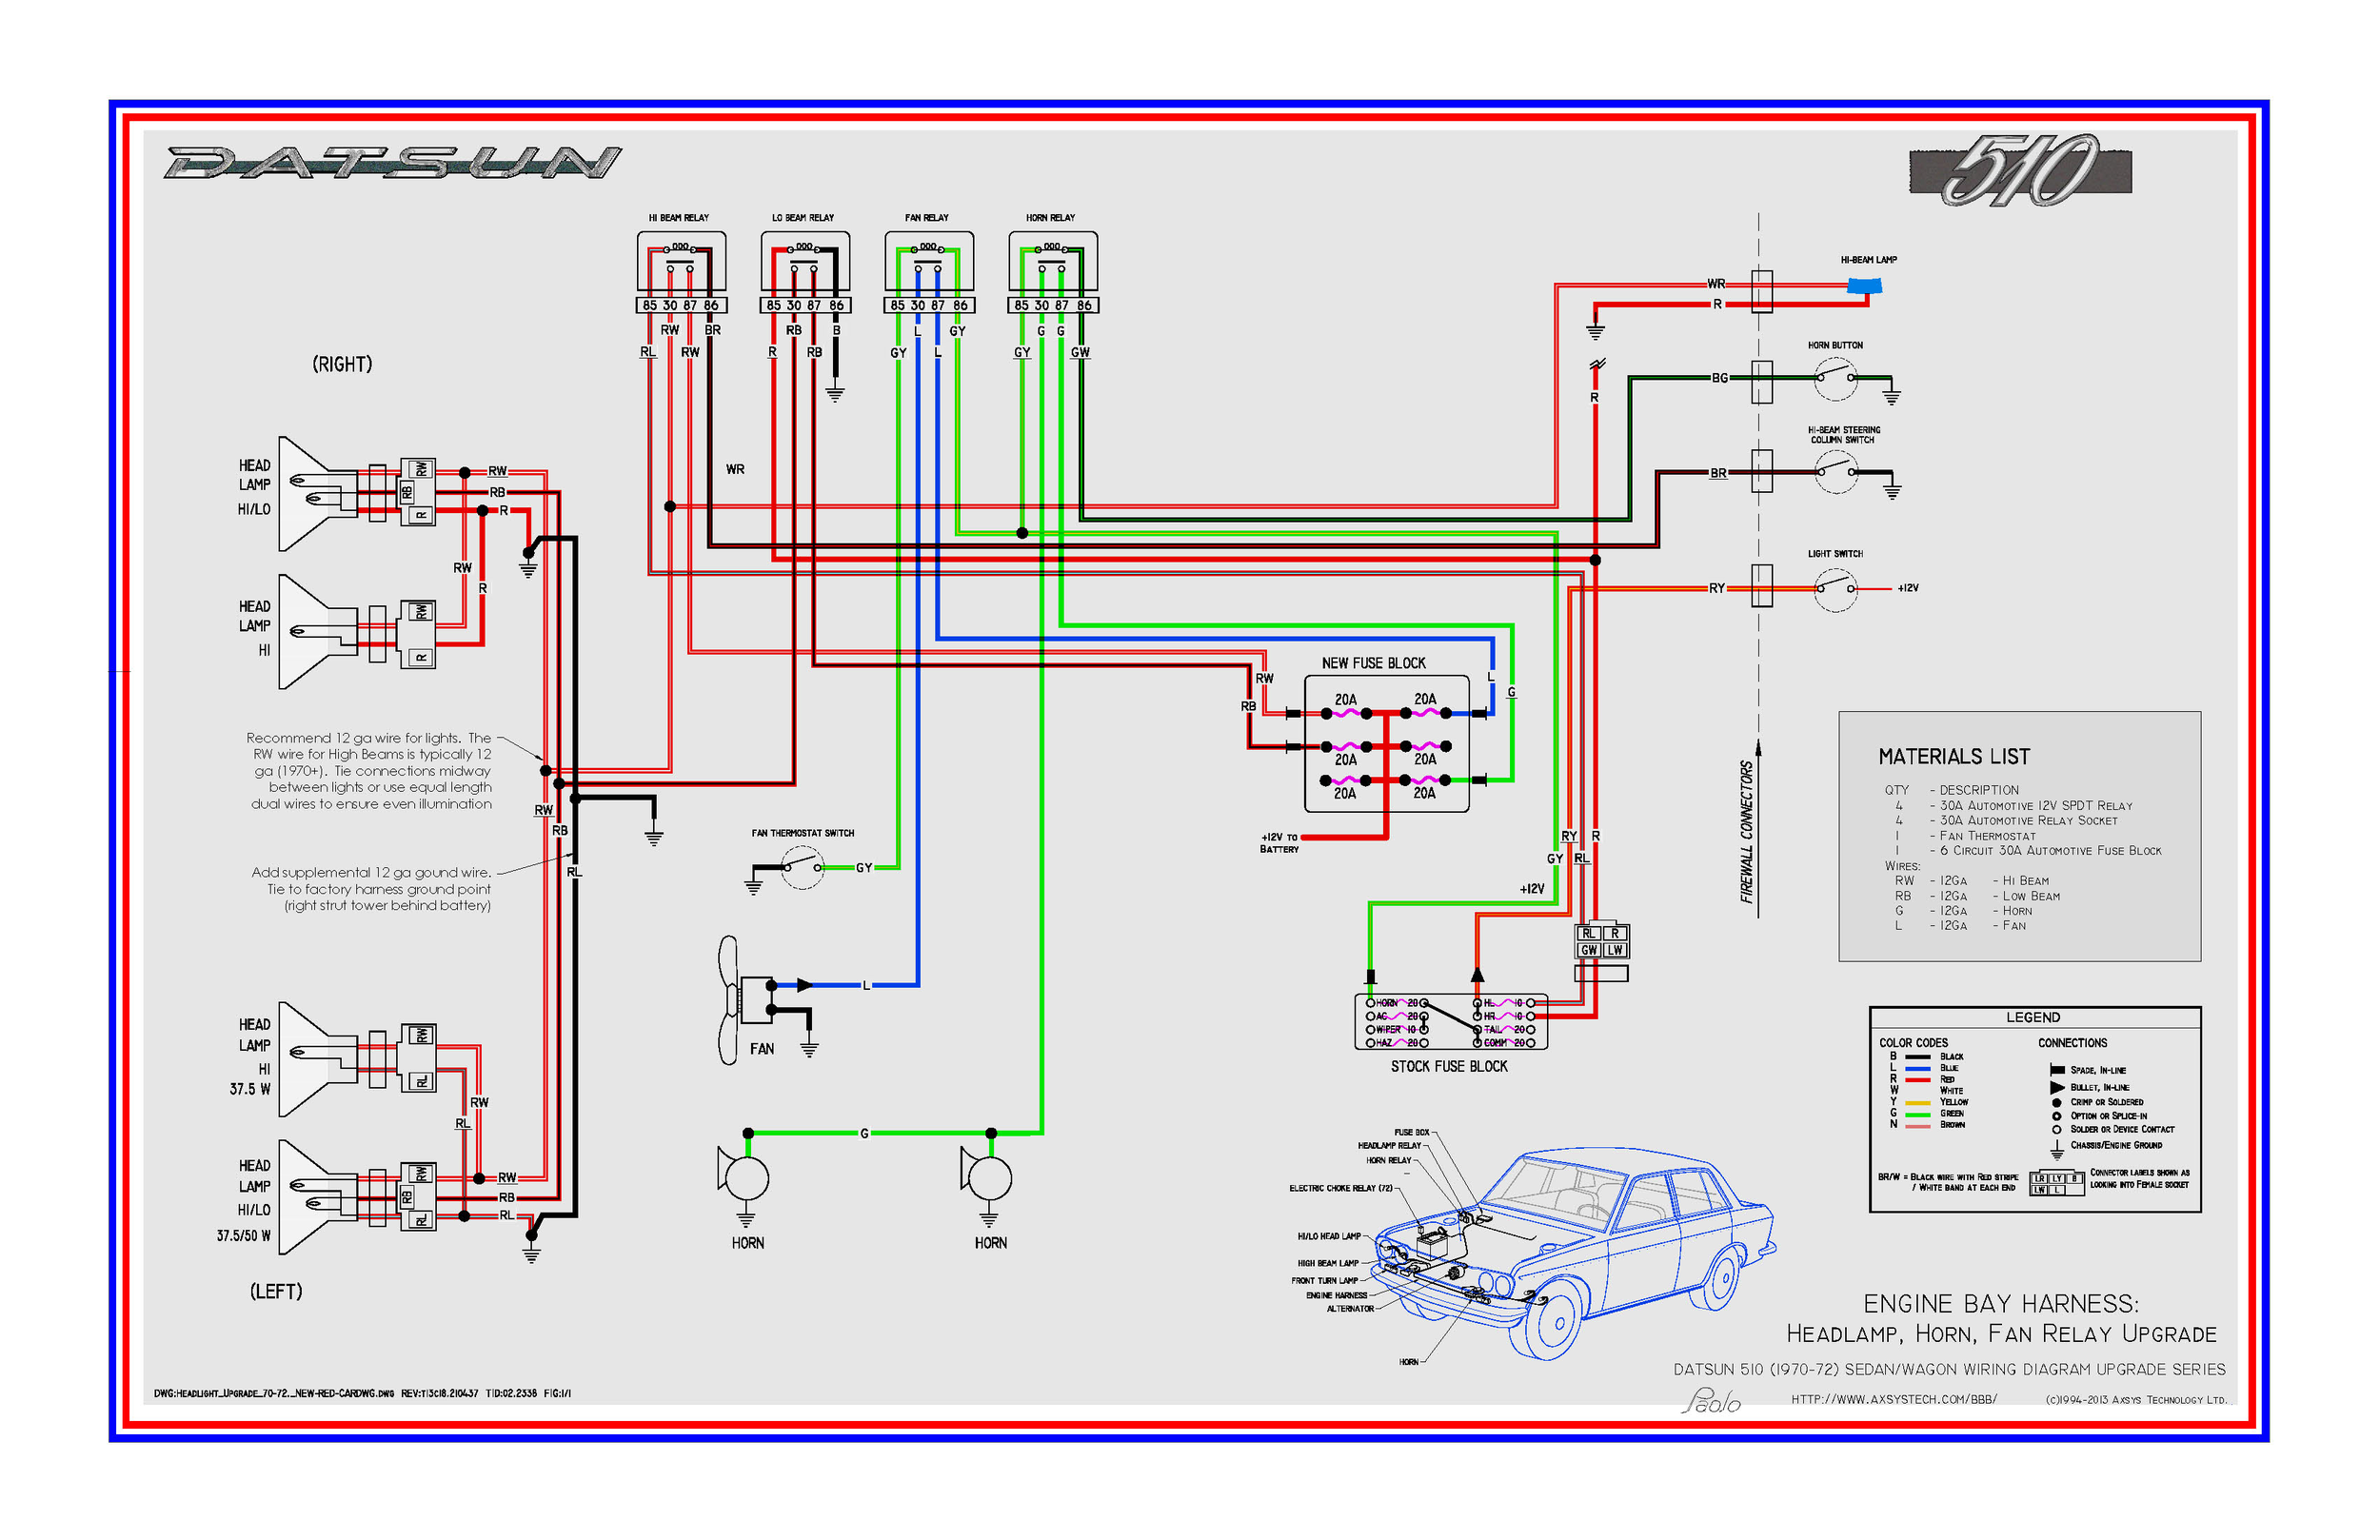 Datsun 510 Headlight Relay Diagram Diy Enthusiasts Wiring Diagrams Headlamp Options The Realm Rh The510realm Com 2002 Trans Am Basic